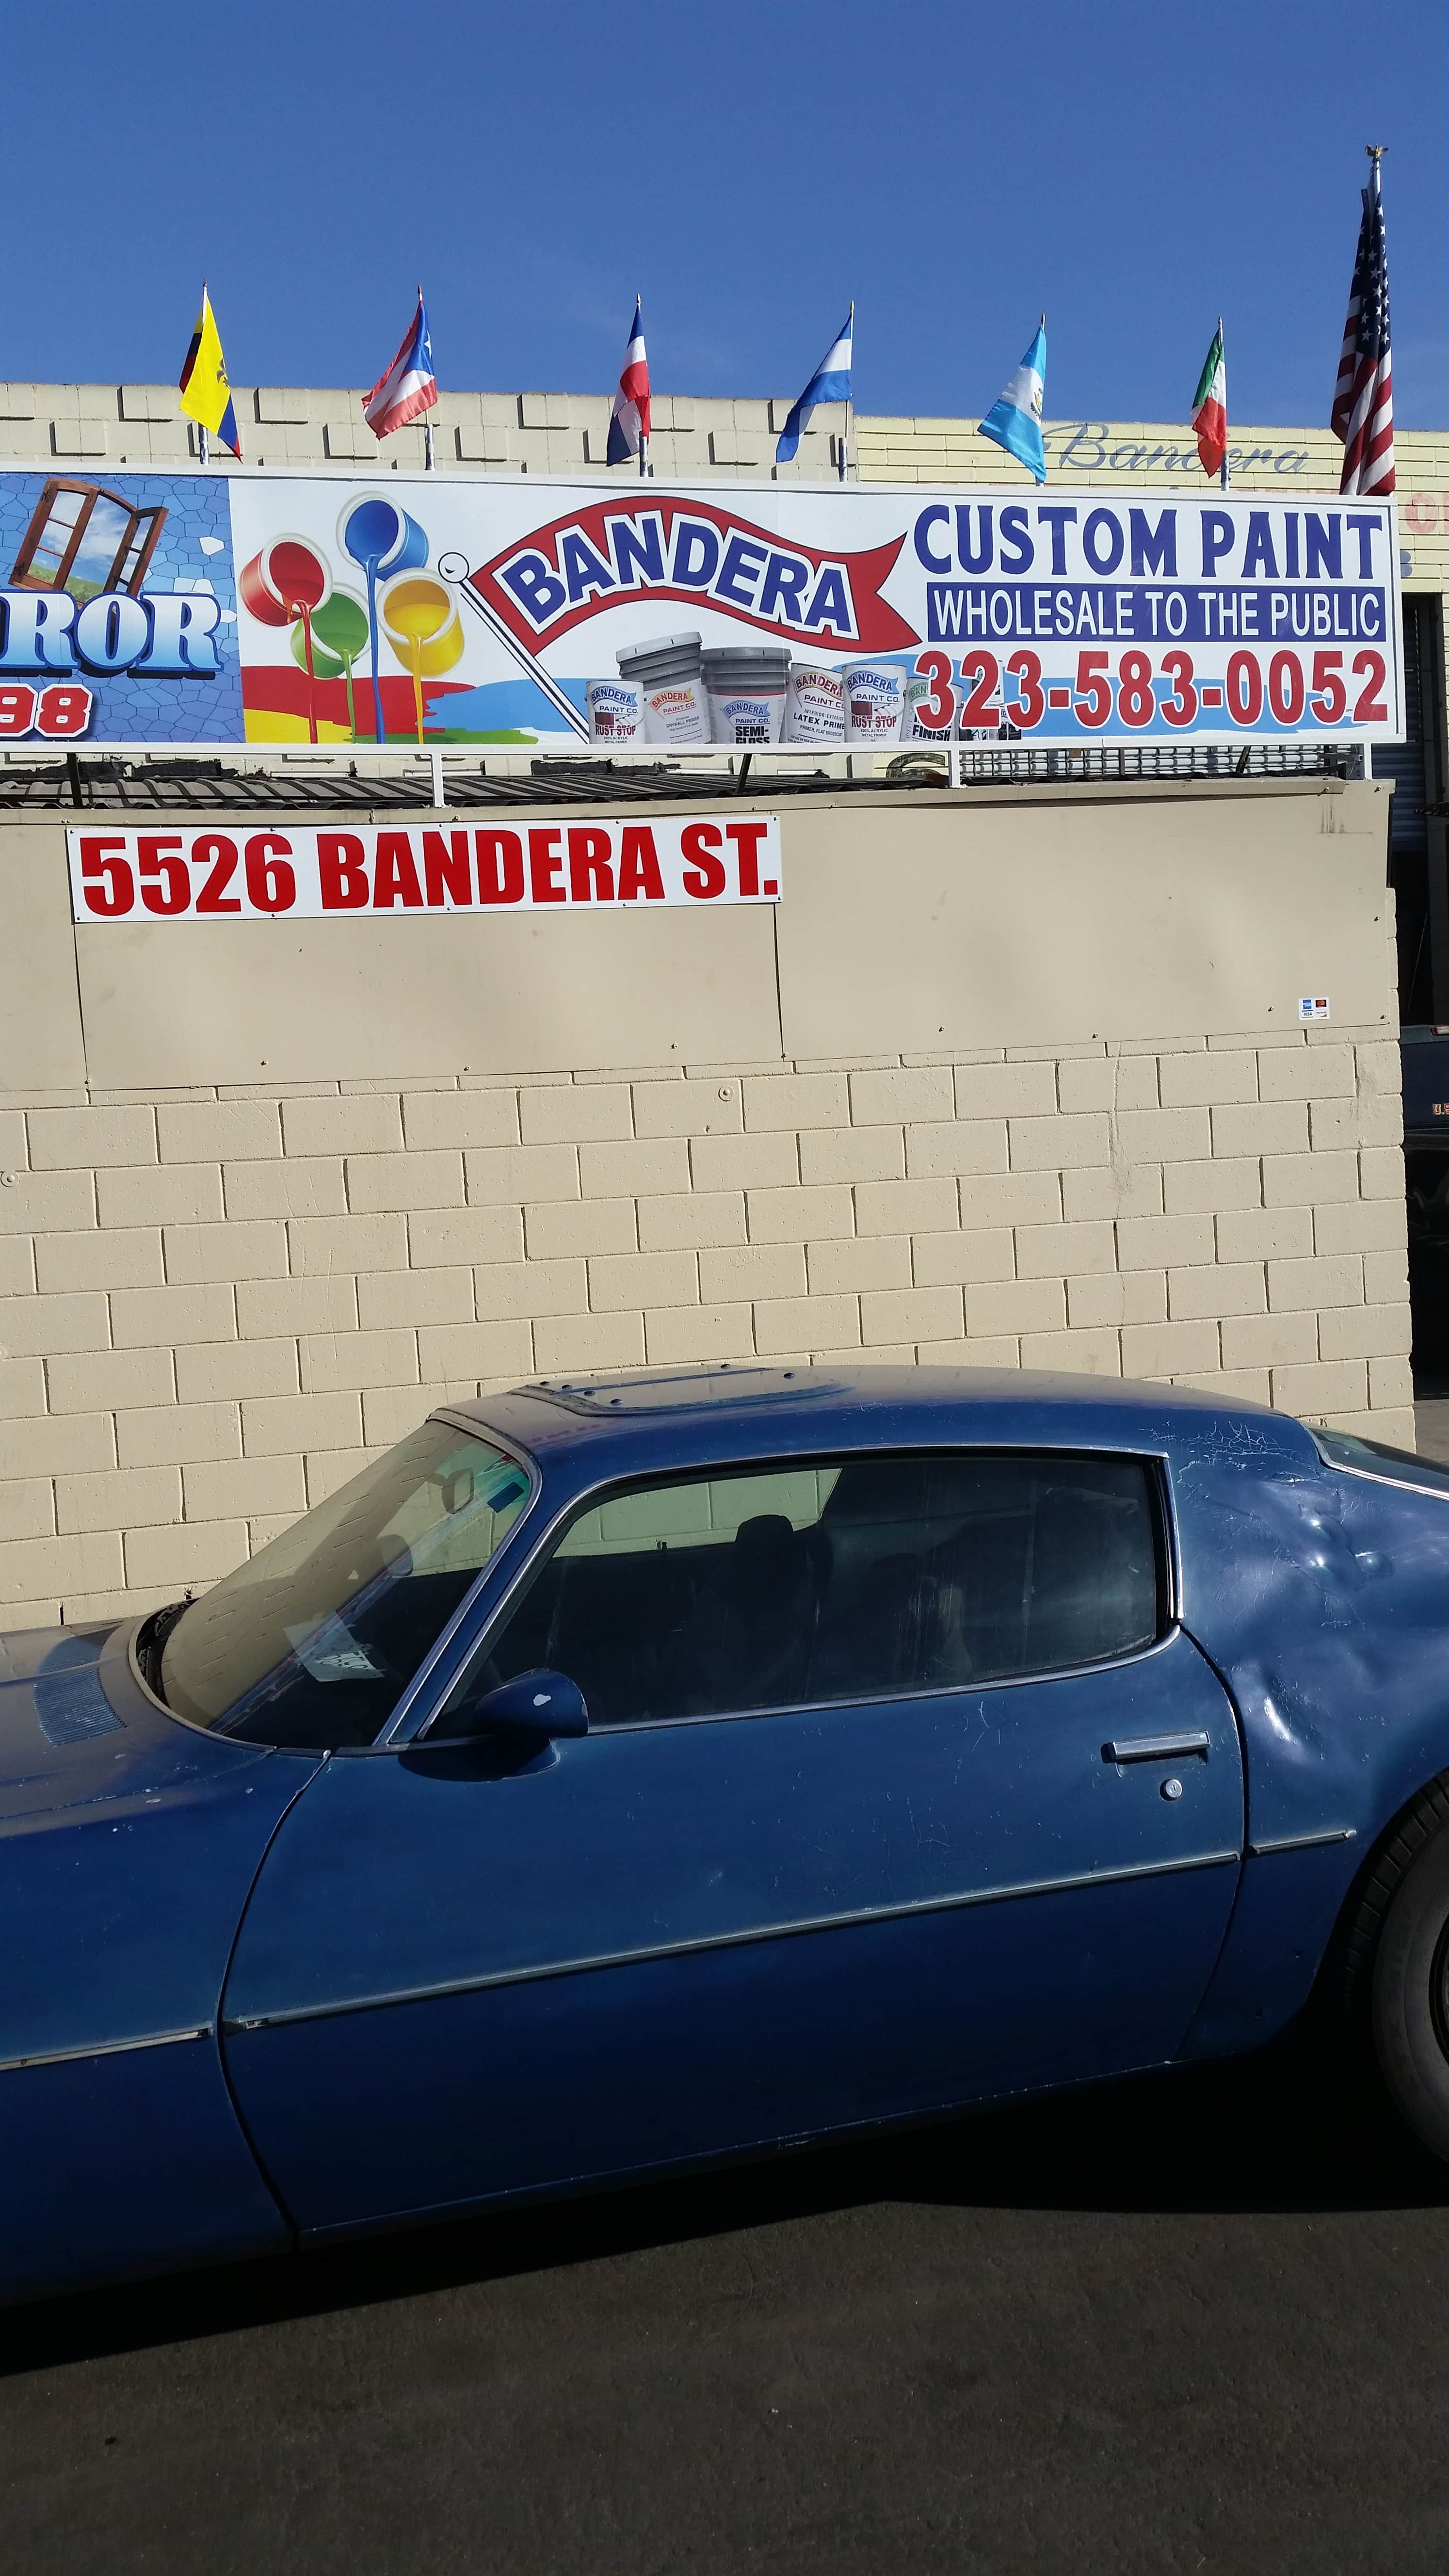 Blue Car and Outdoor Signage